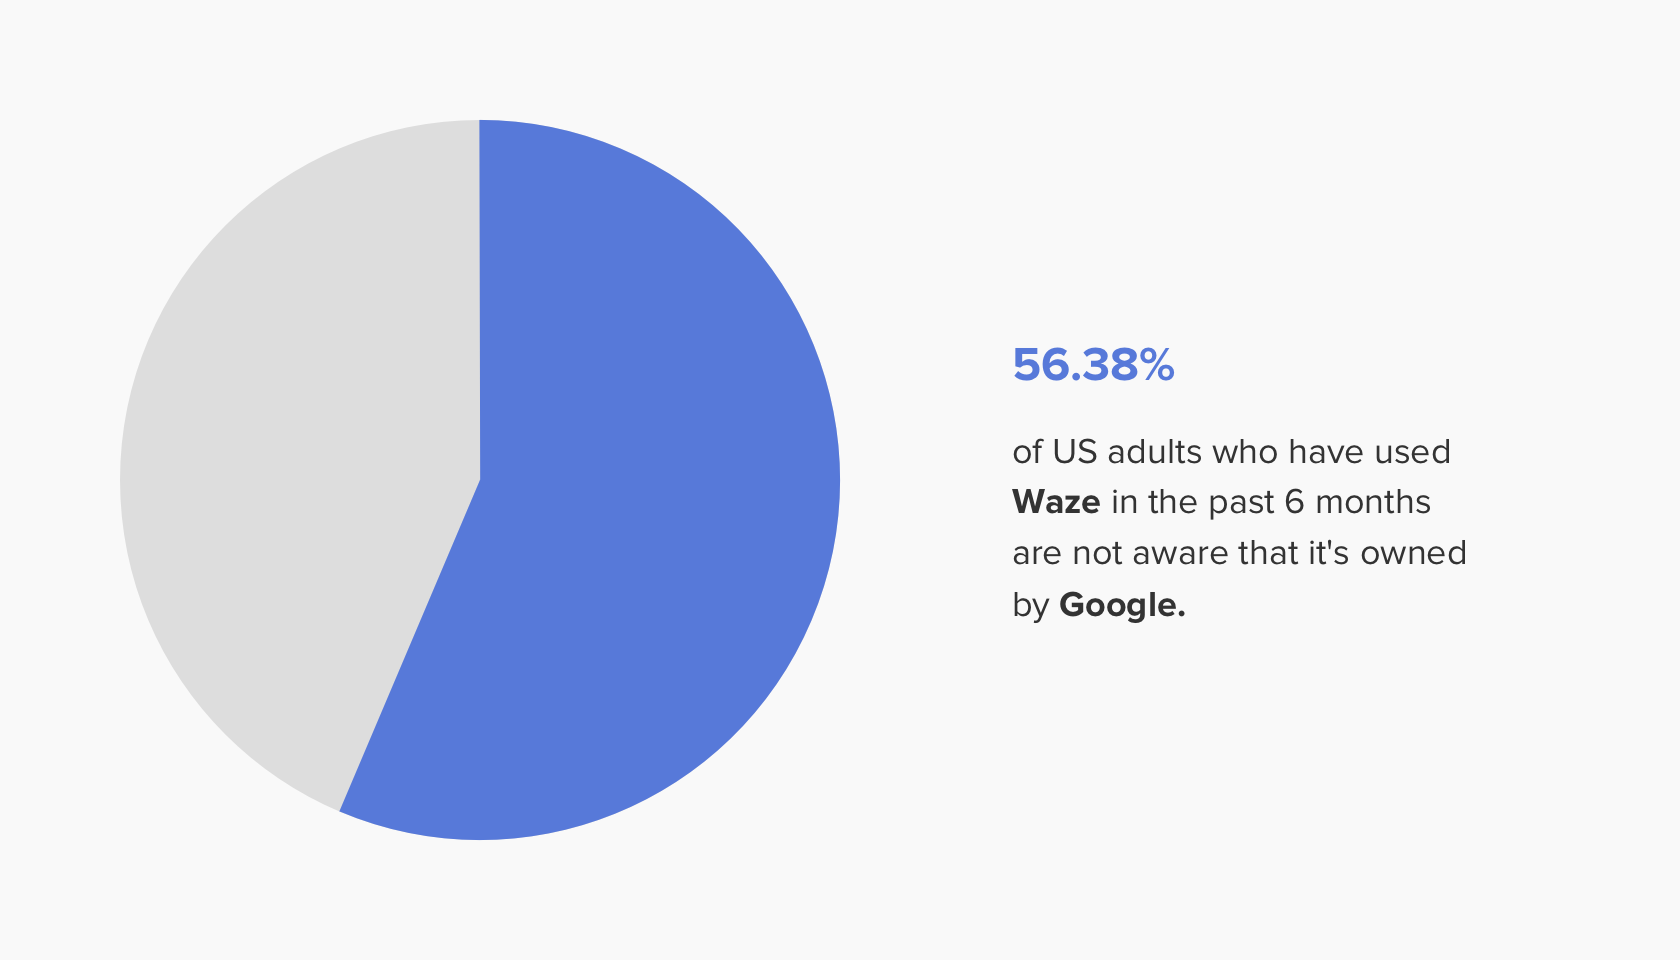 pie-chart-showing-percentge-of-people-unaware-that-Google-owns-Waze